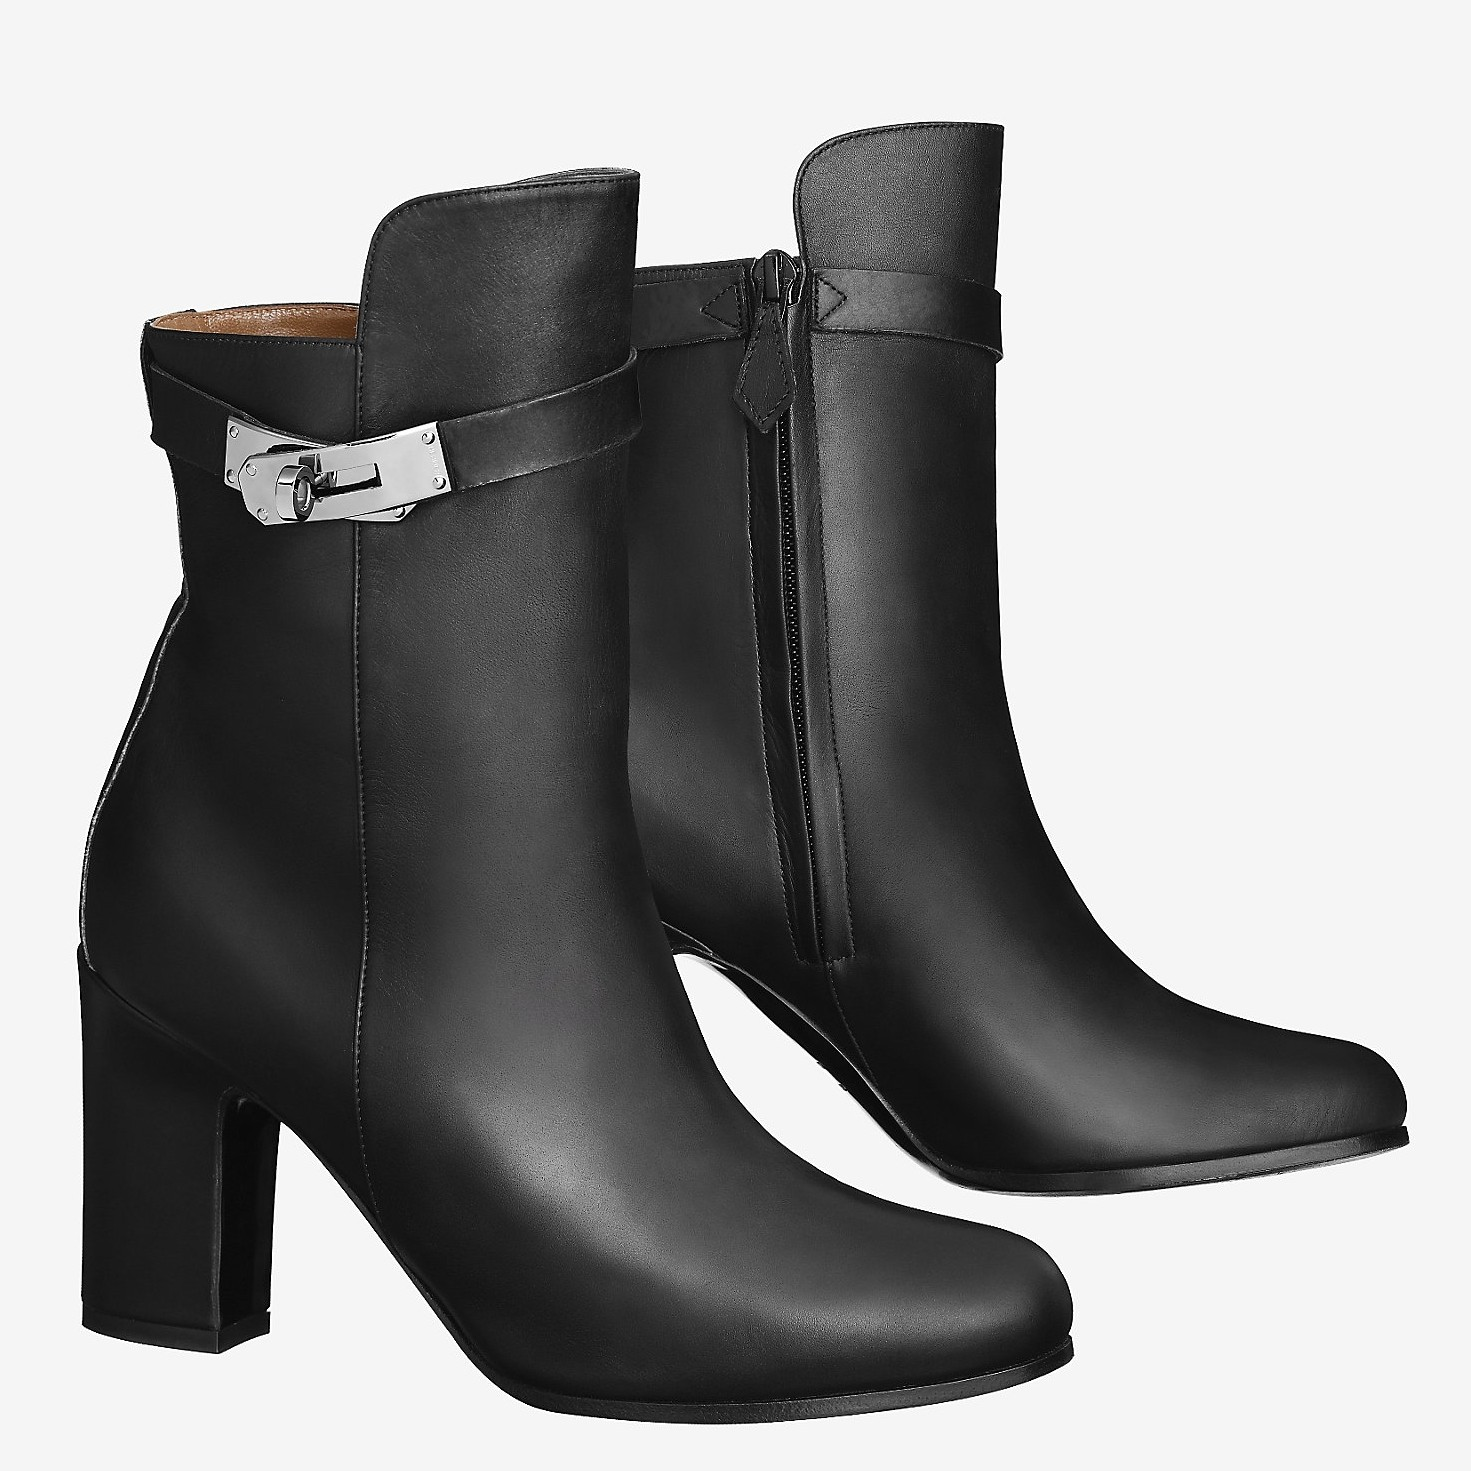 Fake AAA Hermes Black Joueuse Ankle Boots